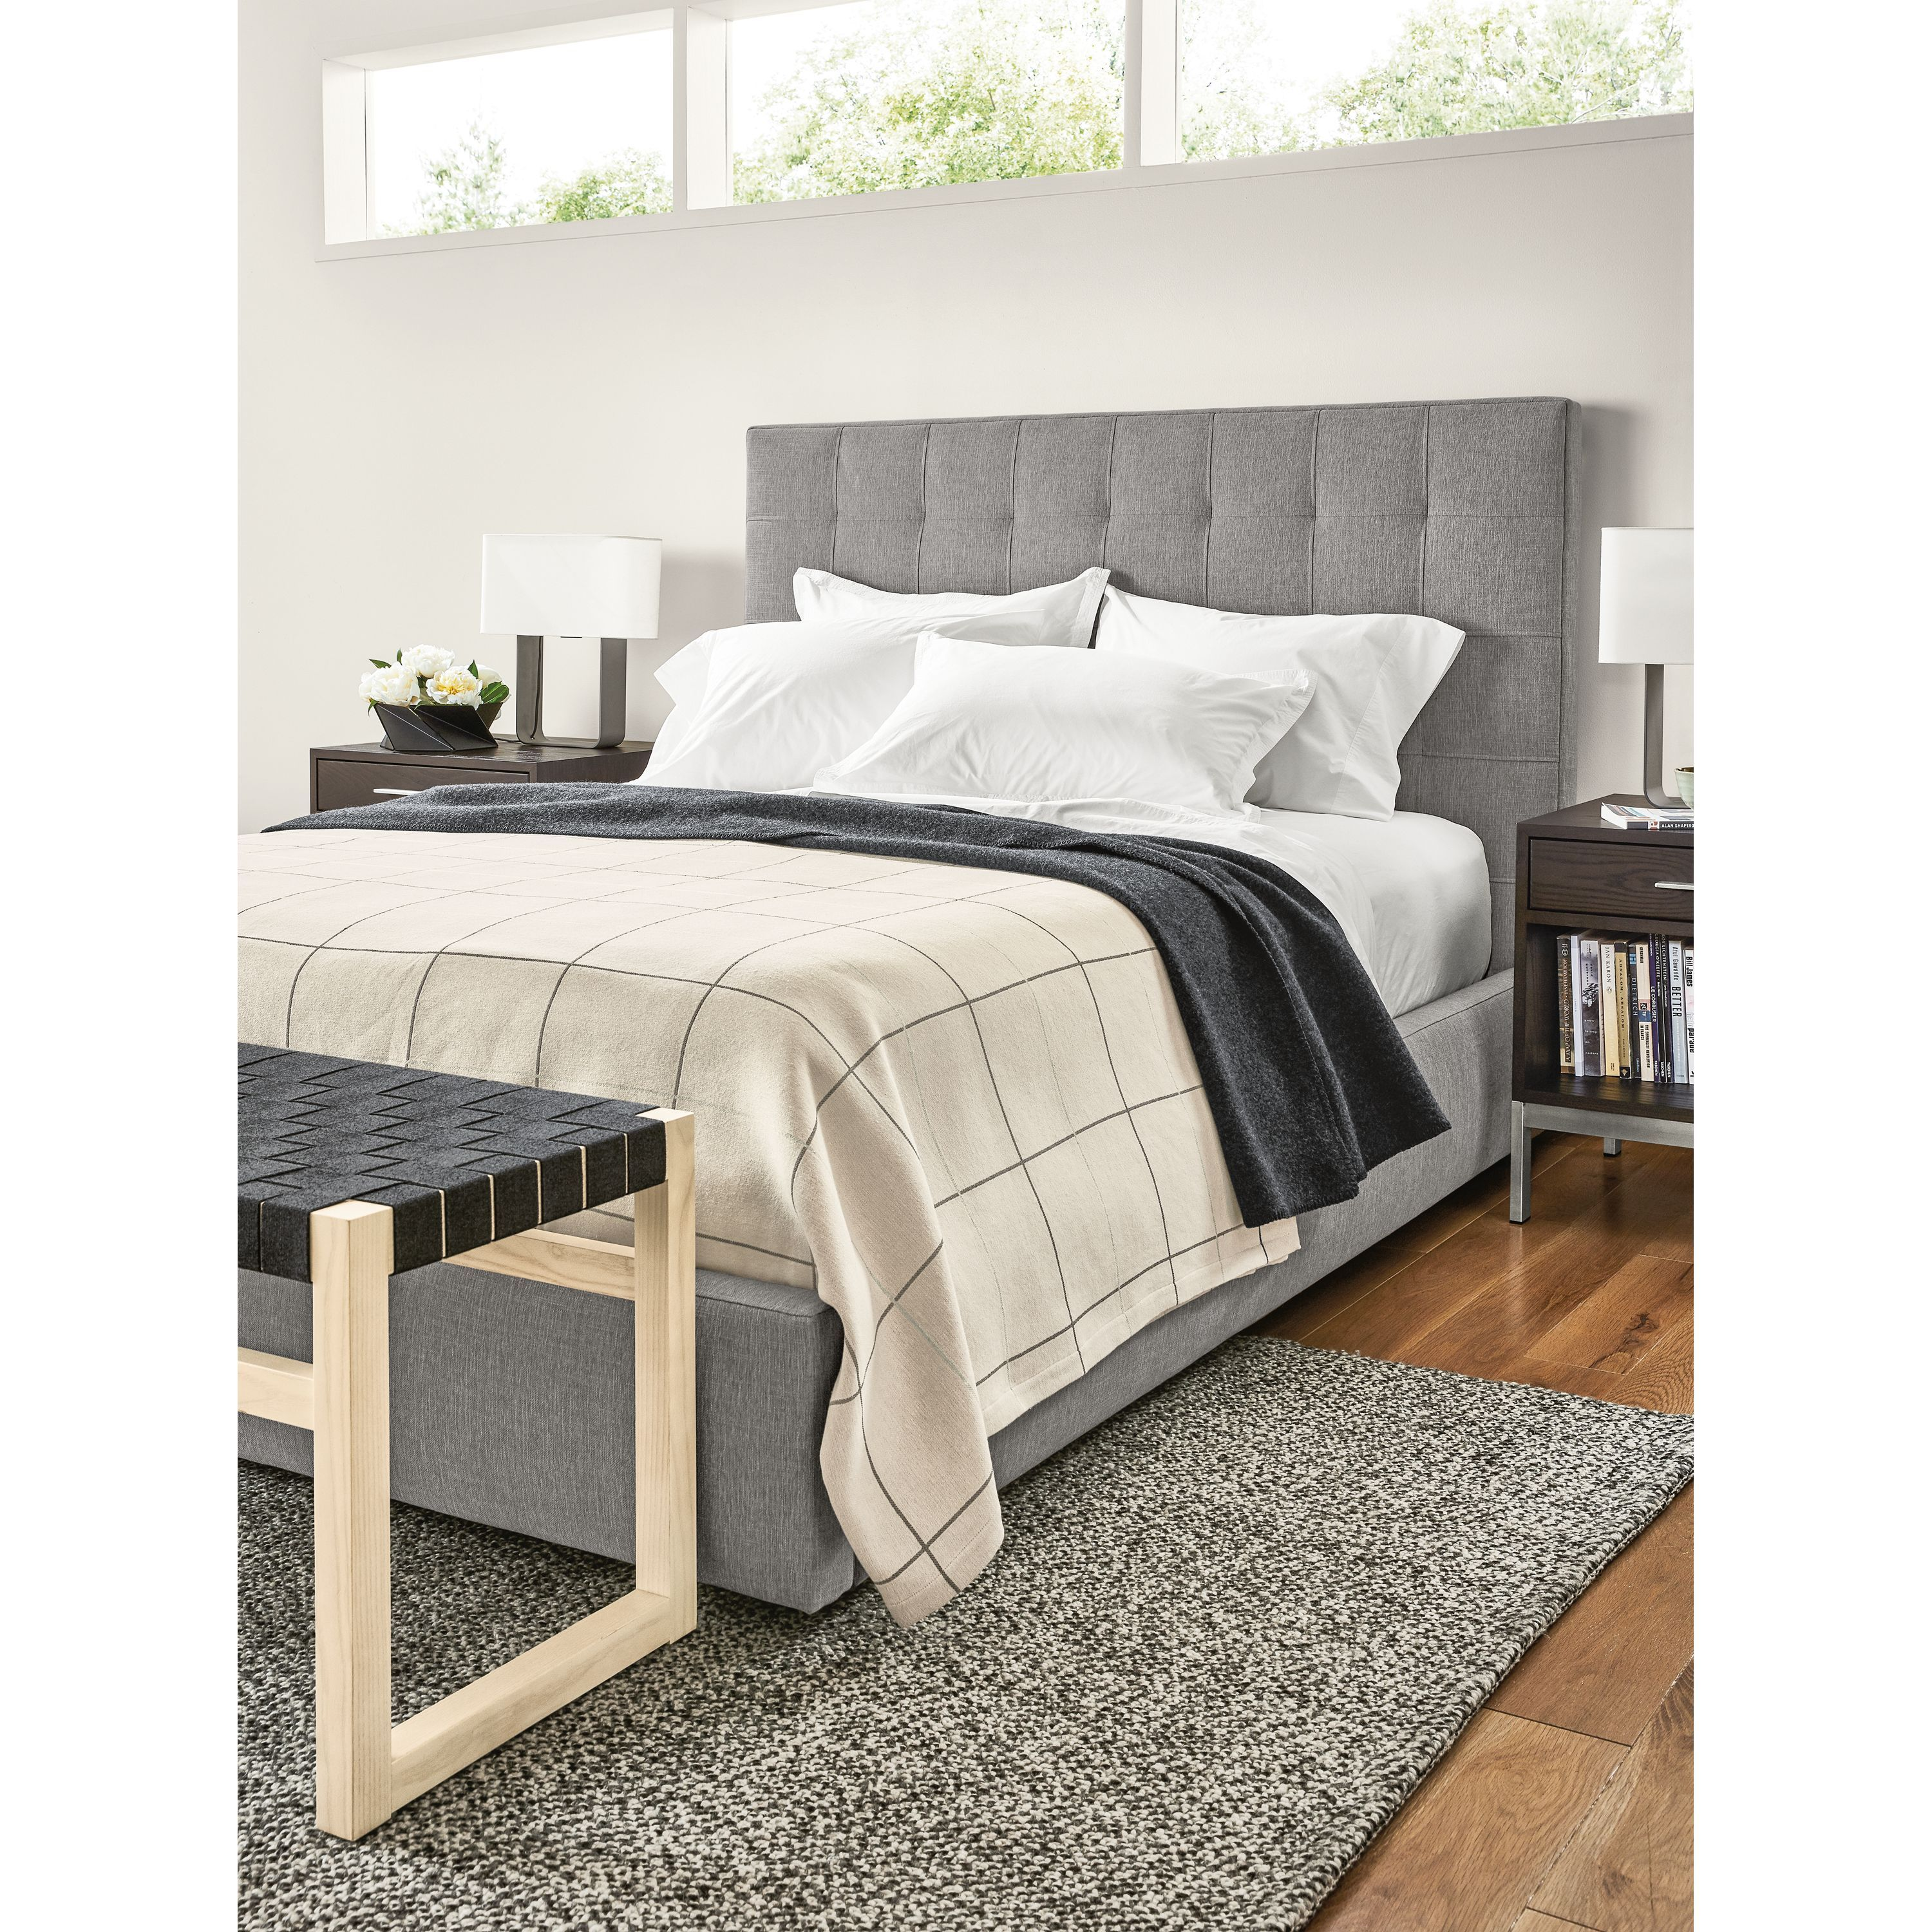 Room Board Avery Bed With Storage Drawer In Kids